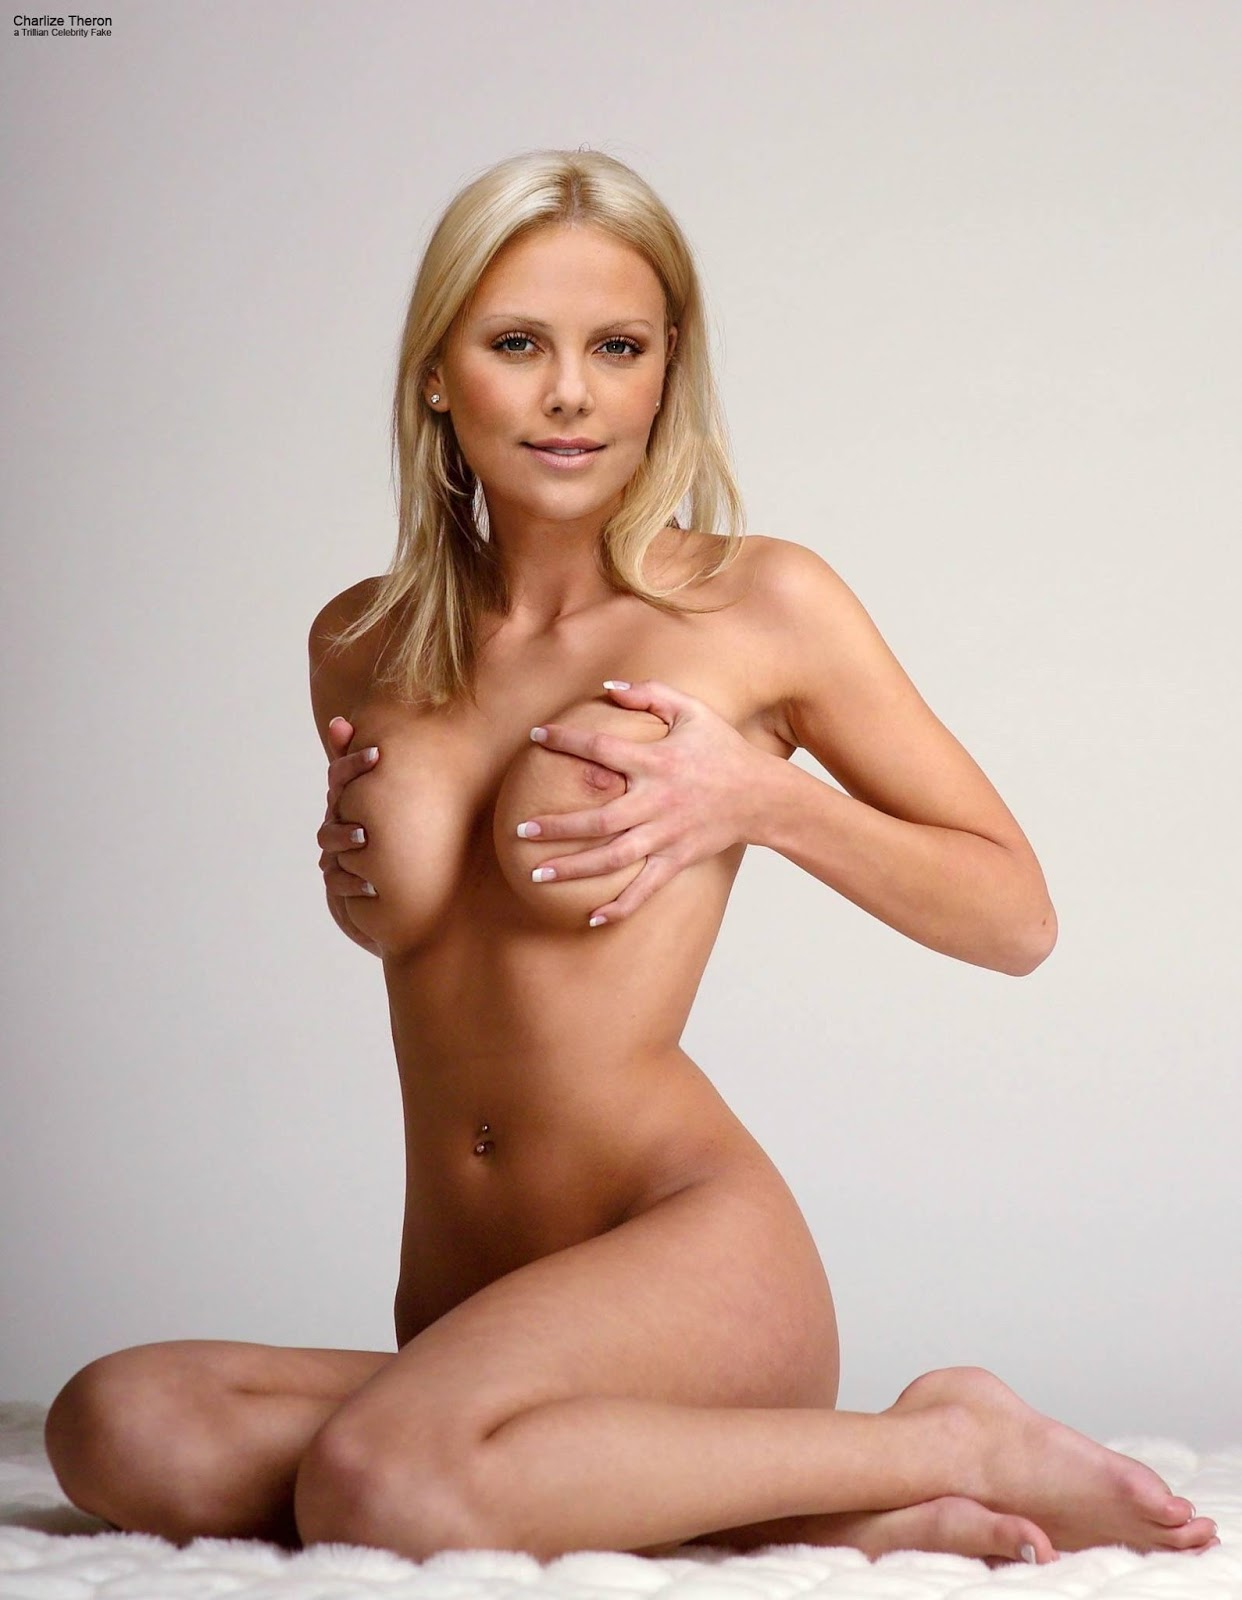 Simply remarkable nude boob press photos this